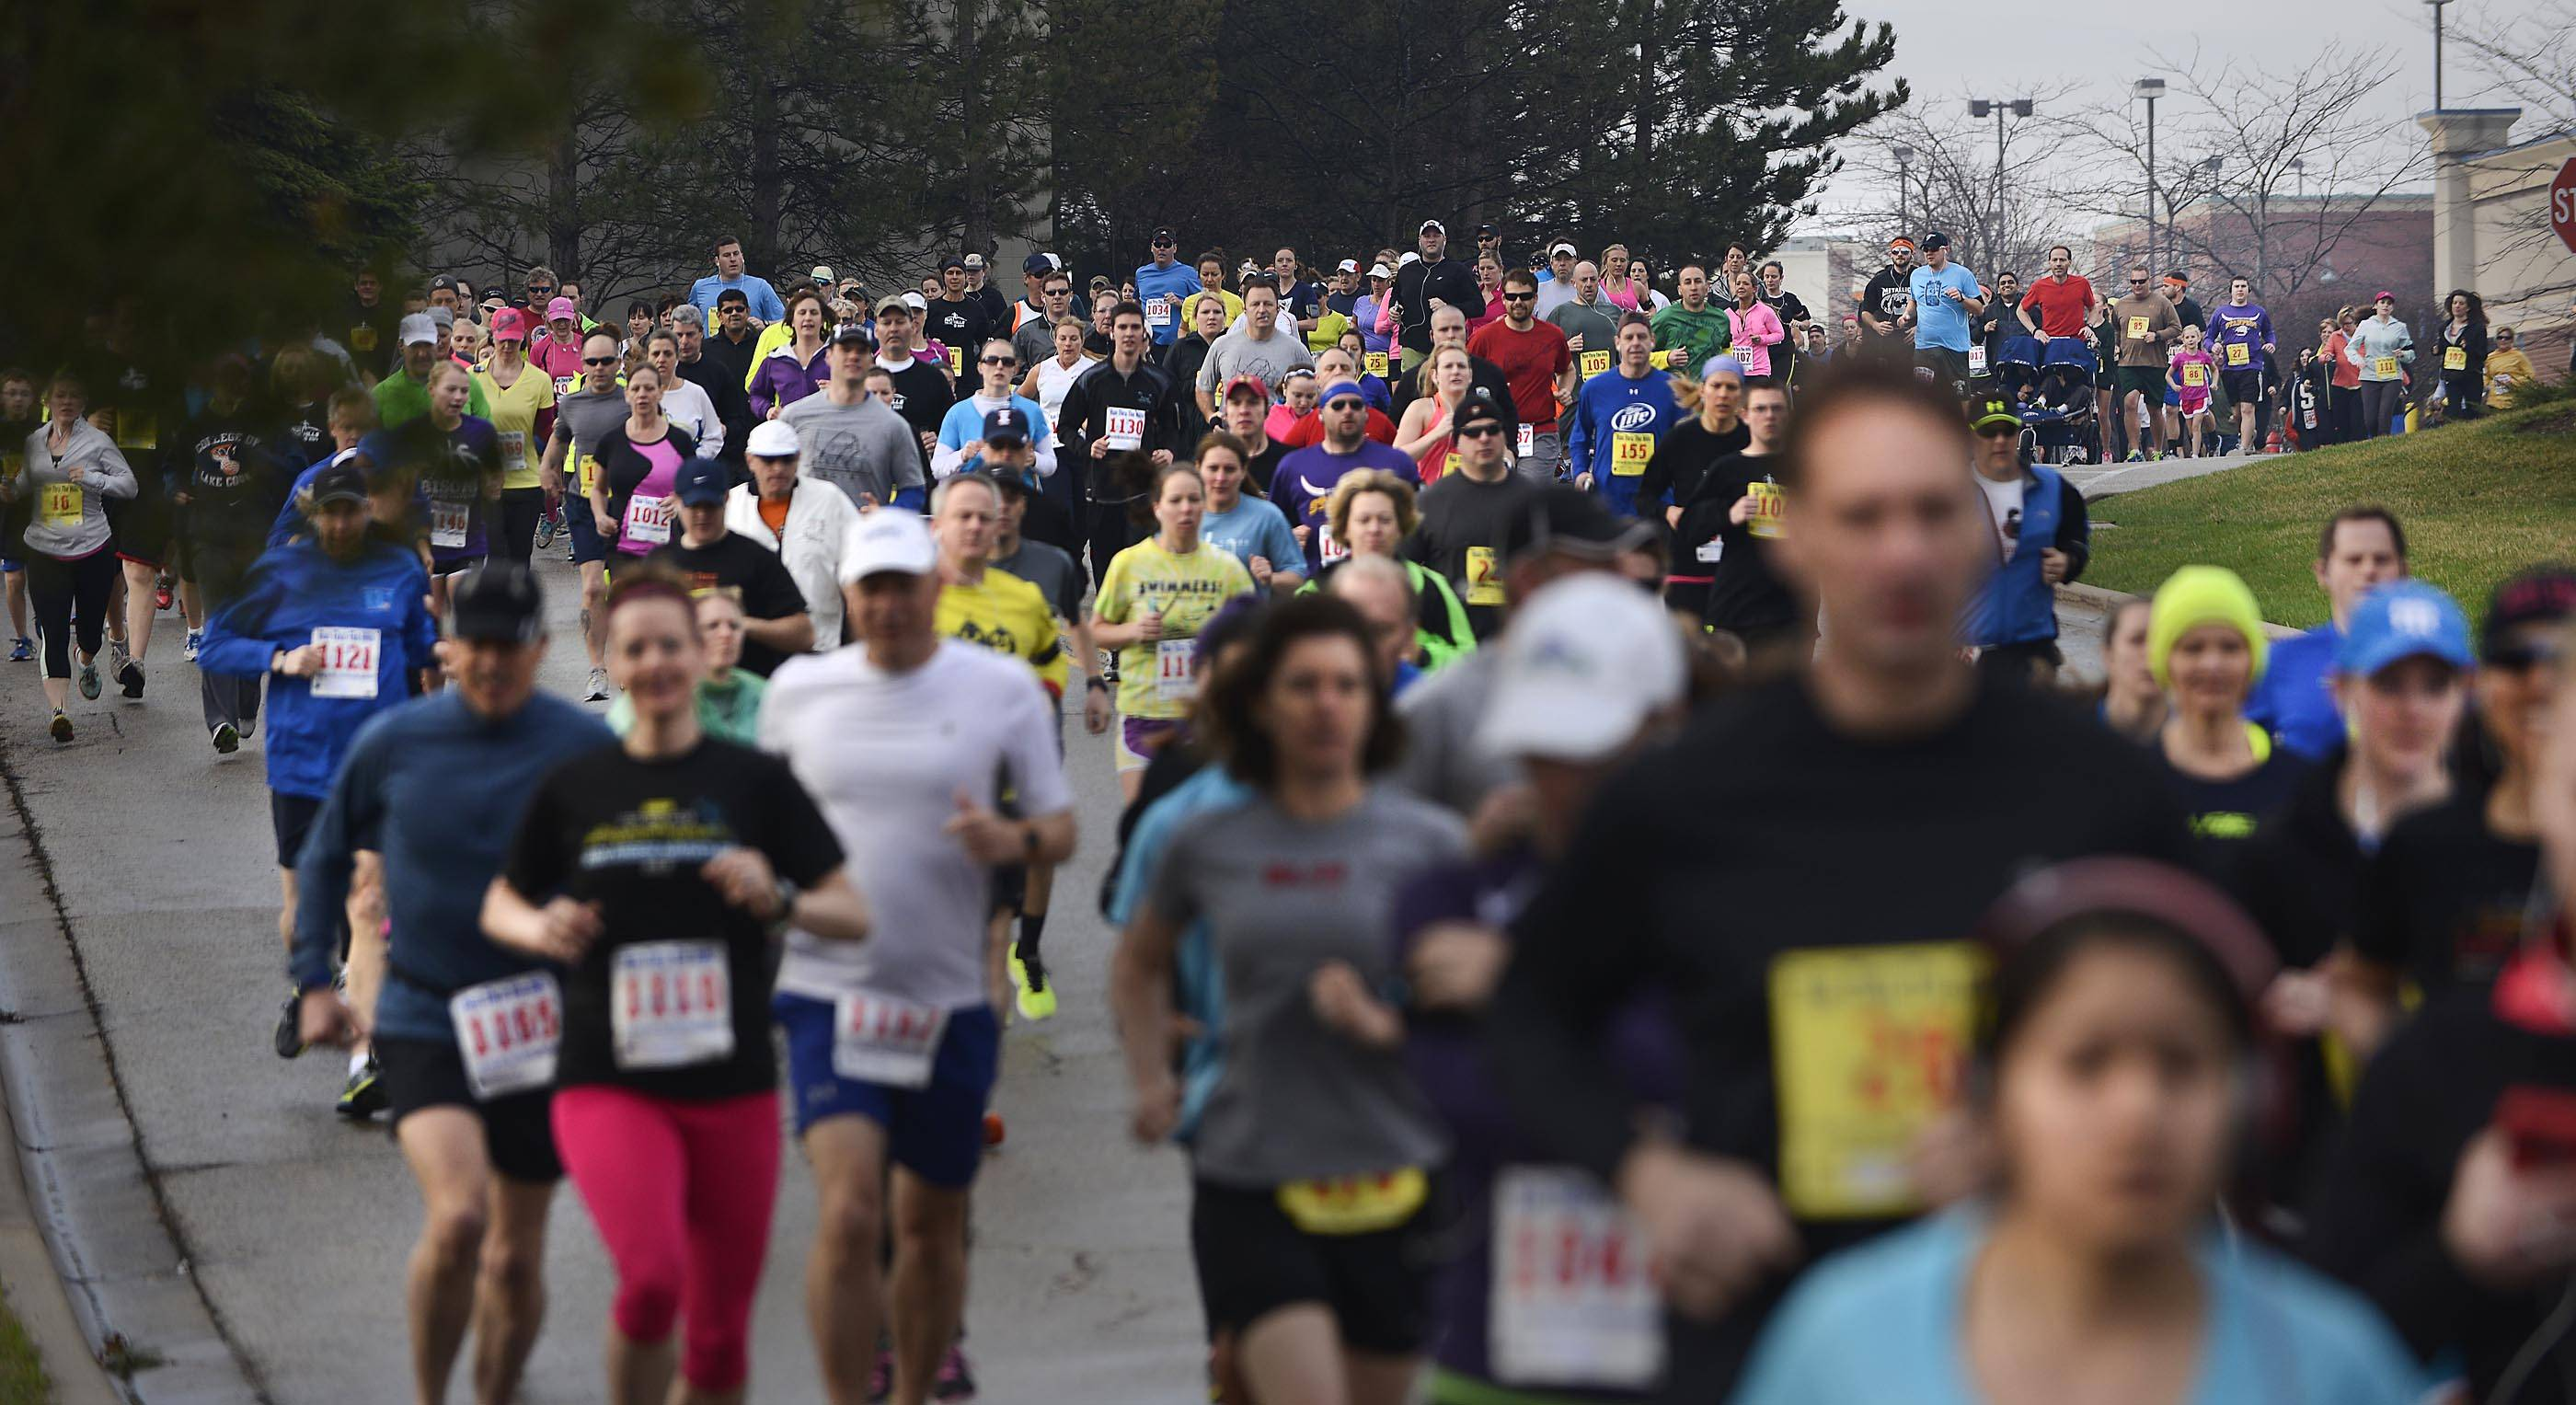 Runners fill the road Sunday morning at the start at the 15th Run Thru The Hills 5K and 10K races in Lake in the Hills. About 500 runners took part in the races.